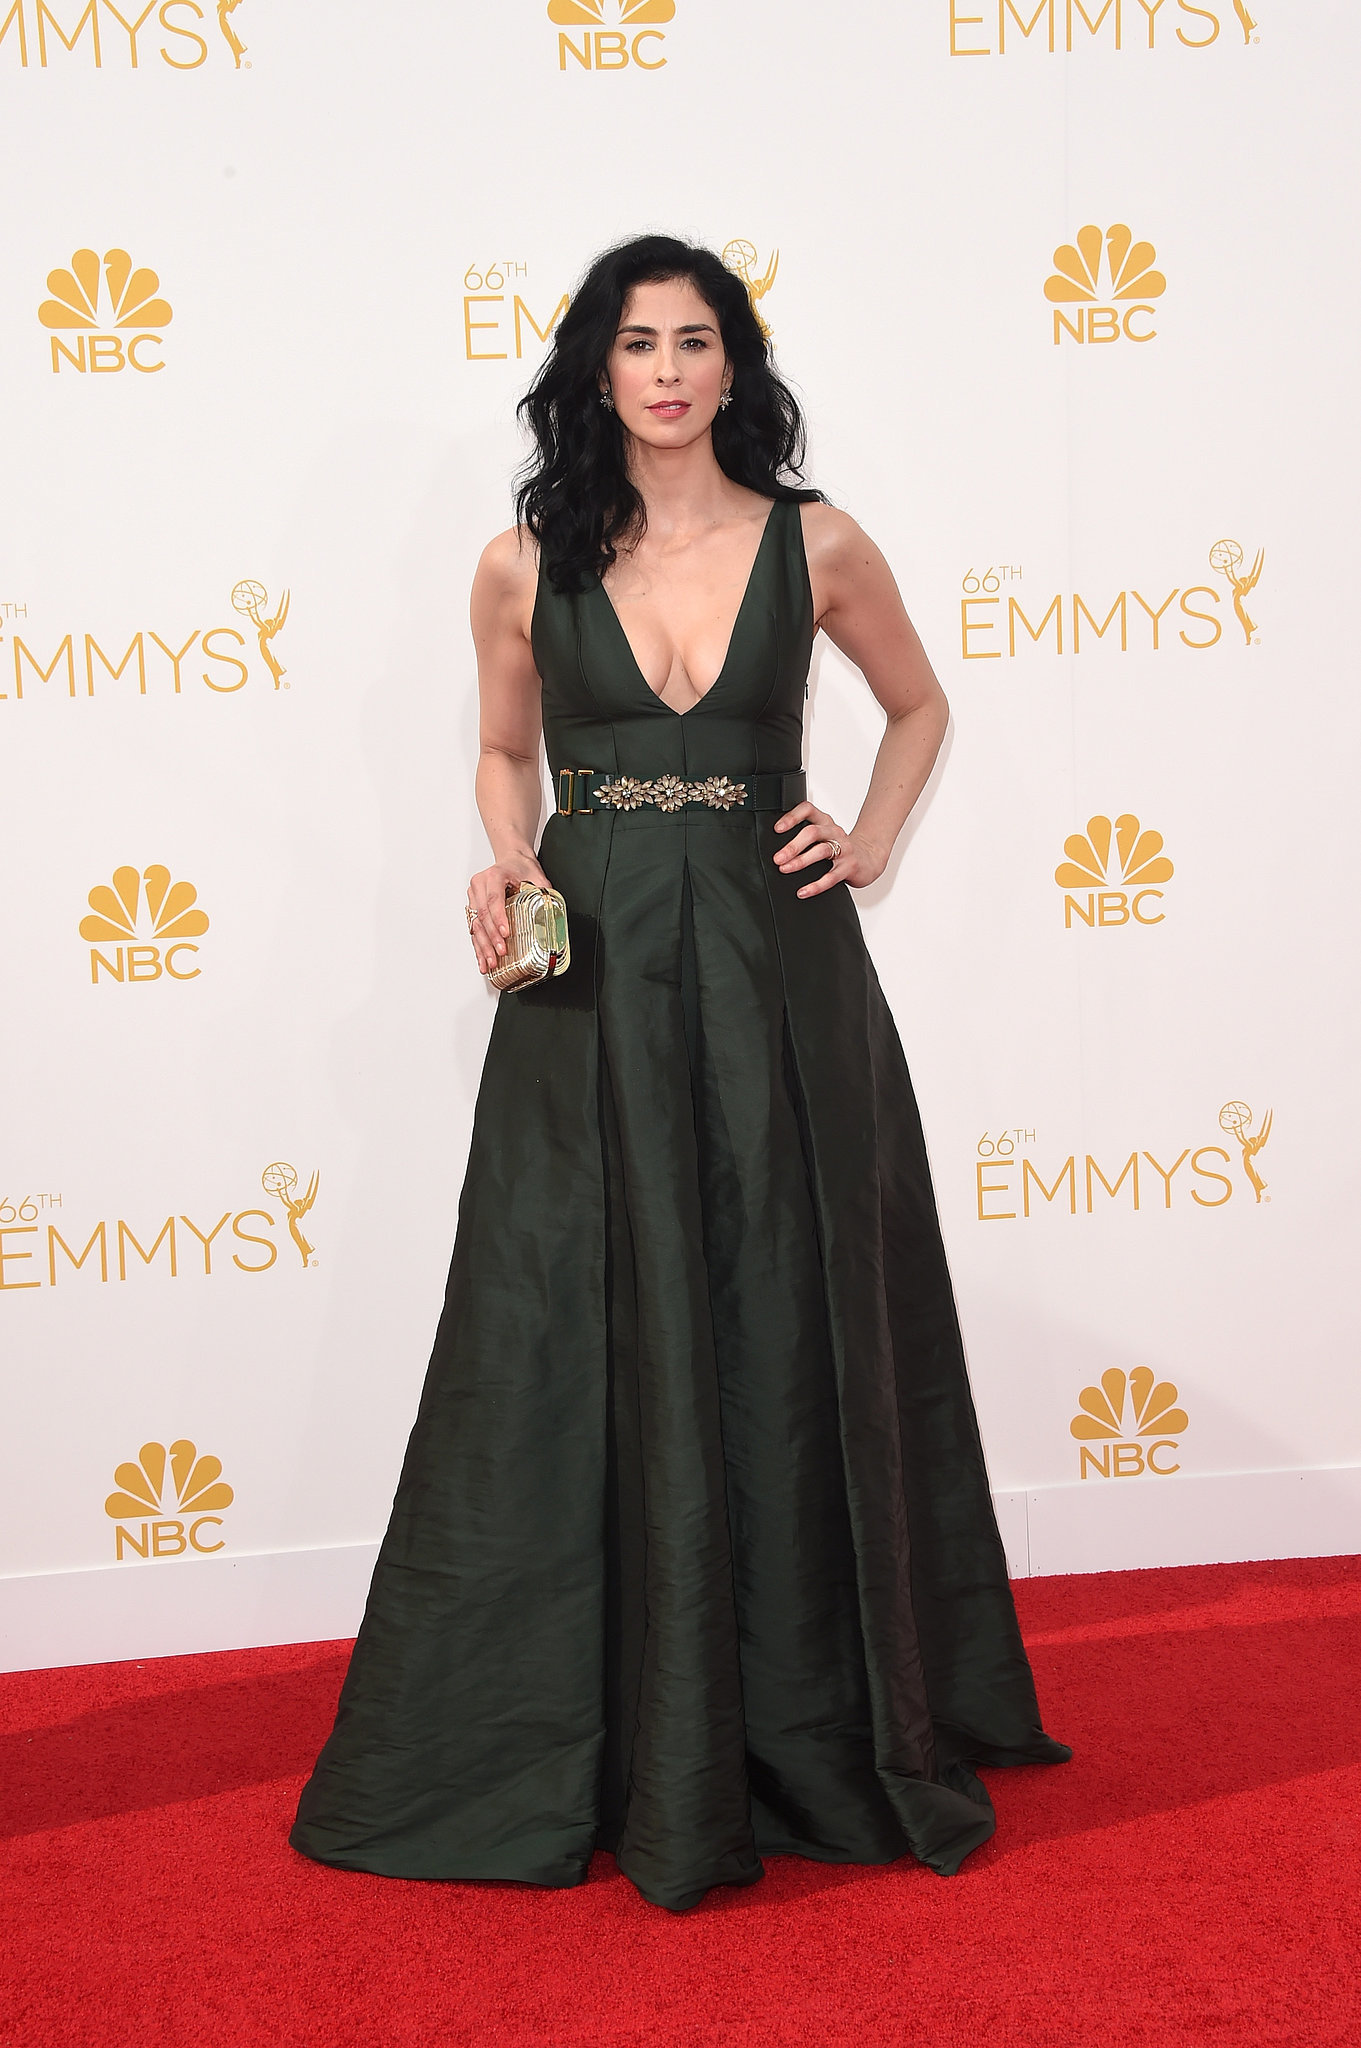 Sarah Silverman 2014 Emmy Awards Sarah Silverman In Marni  At The  2014 Emmy Awards